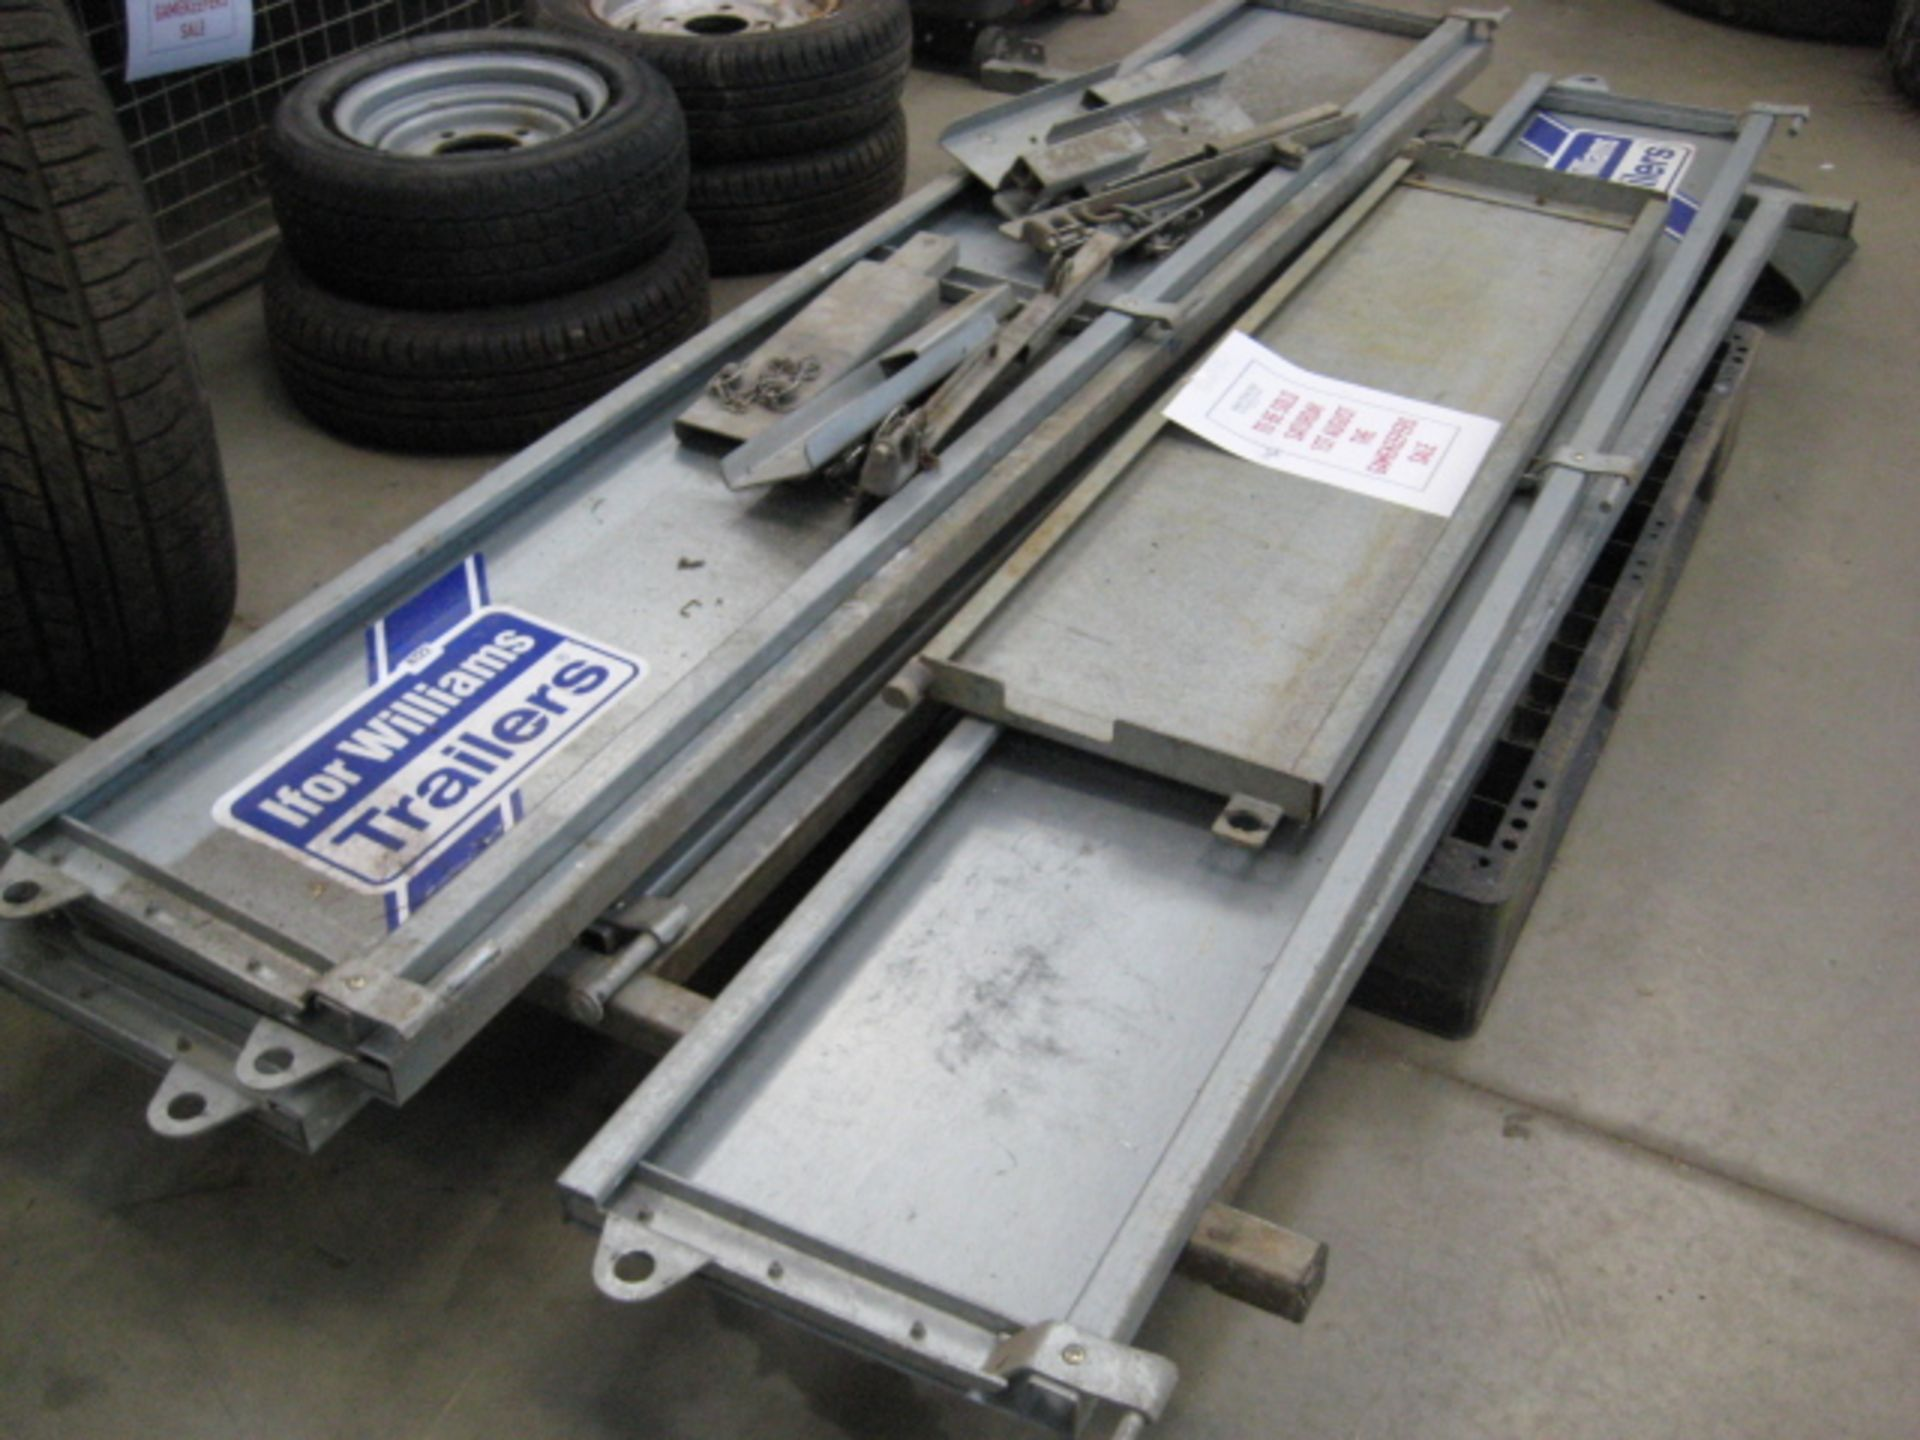 Lot 4122 - Sides, support posts, tailgate and ladder rack for Ifor Williams LM186 trailer